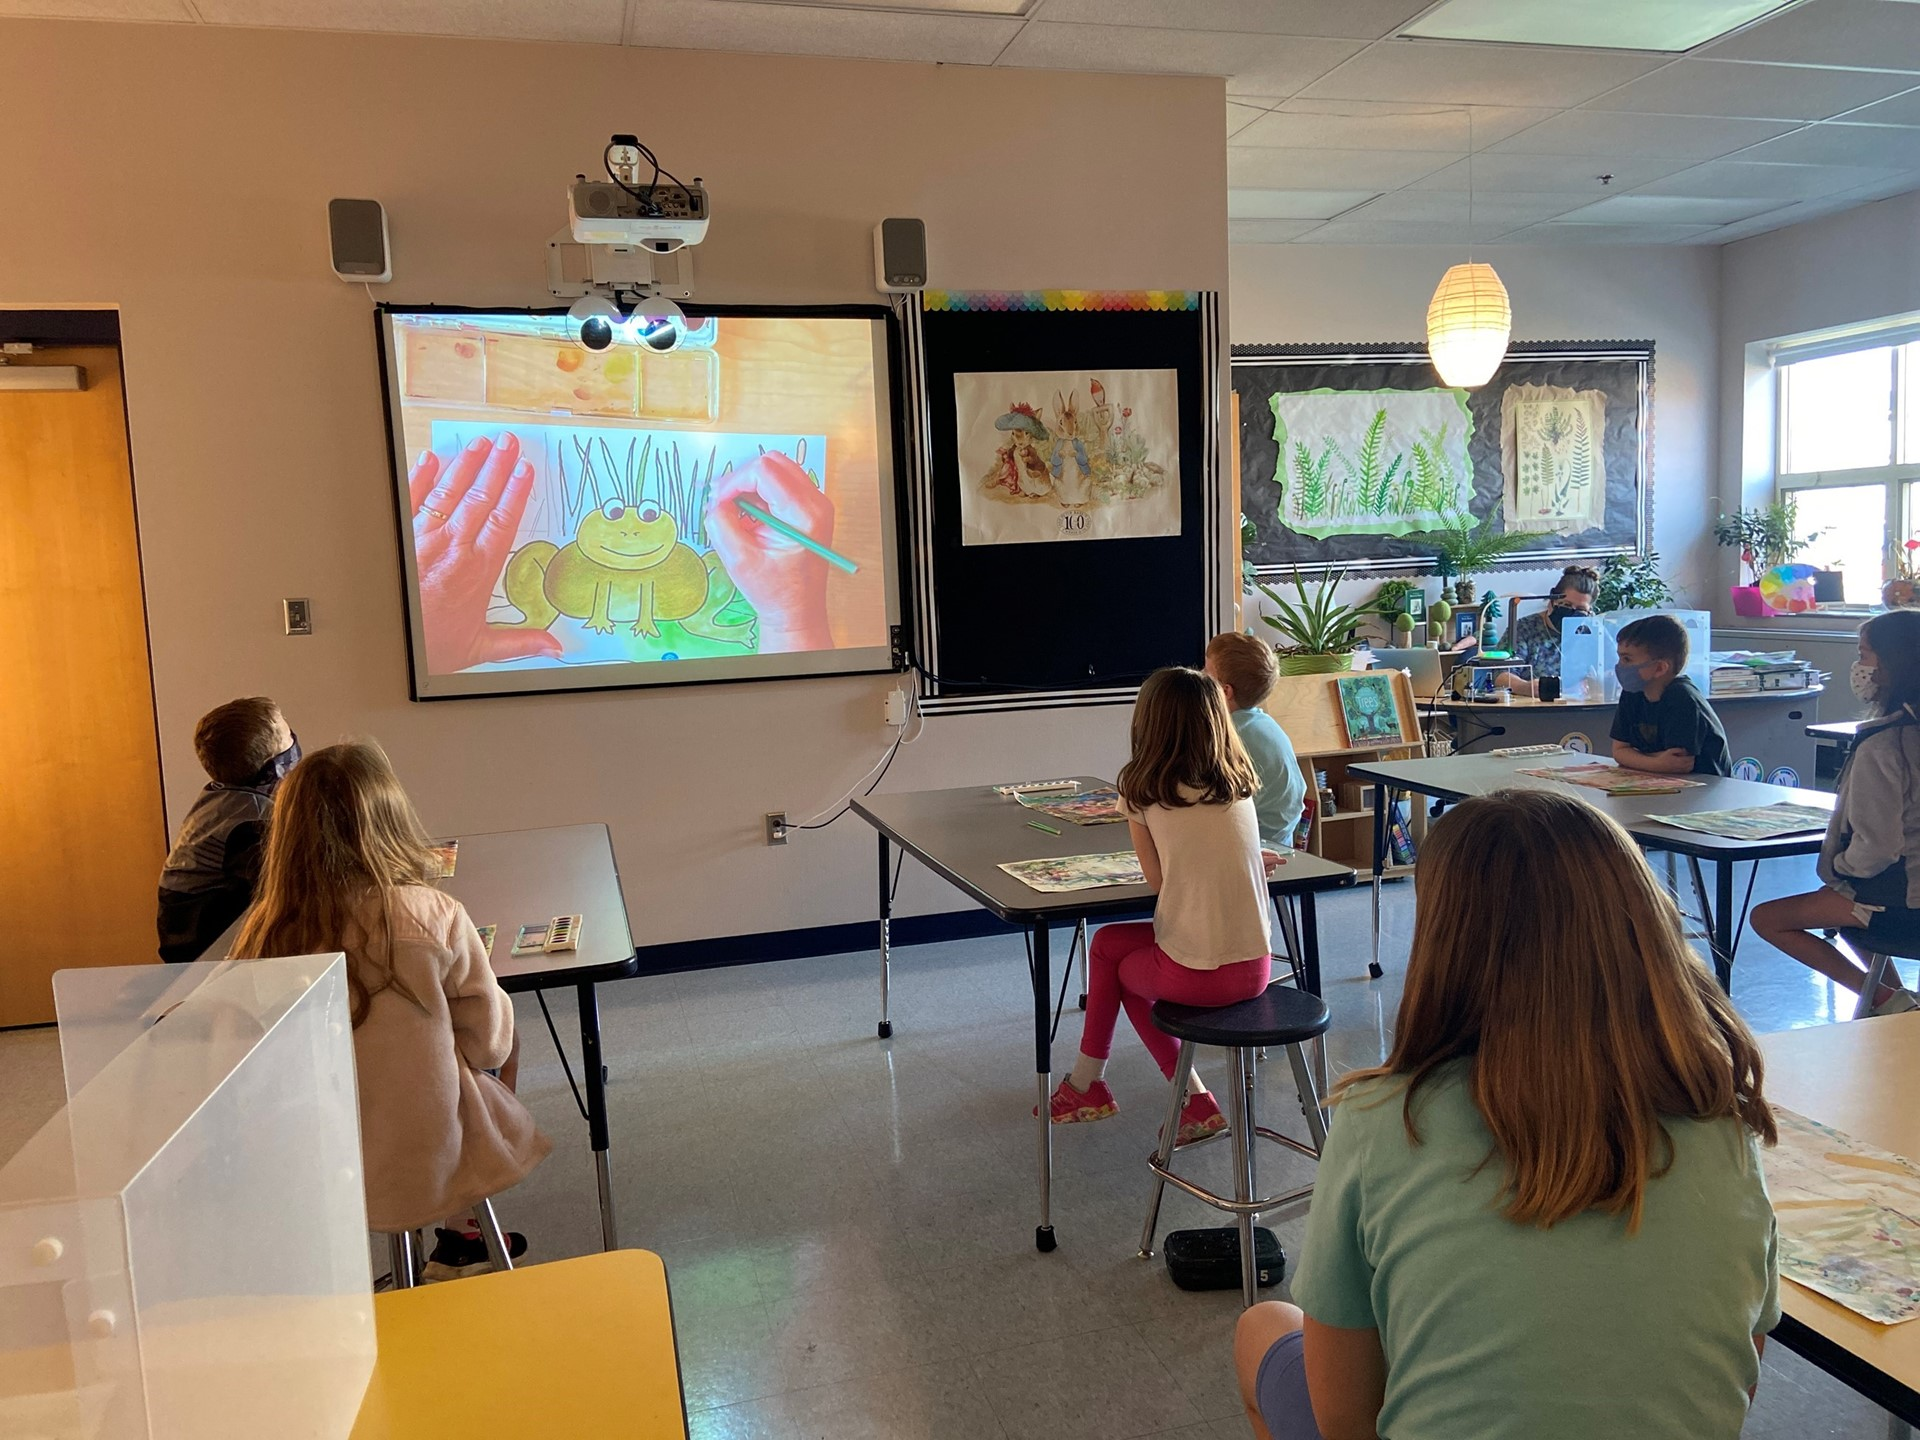 Students in art class observing the teacher draw a frog.